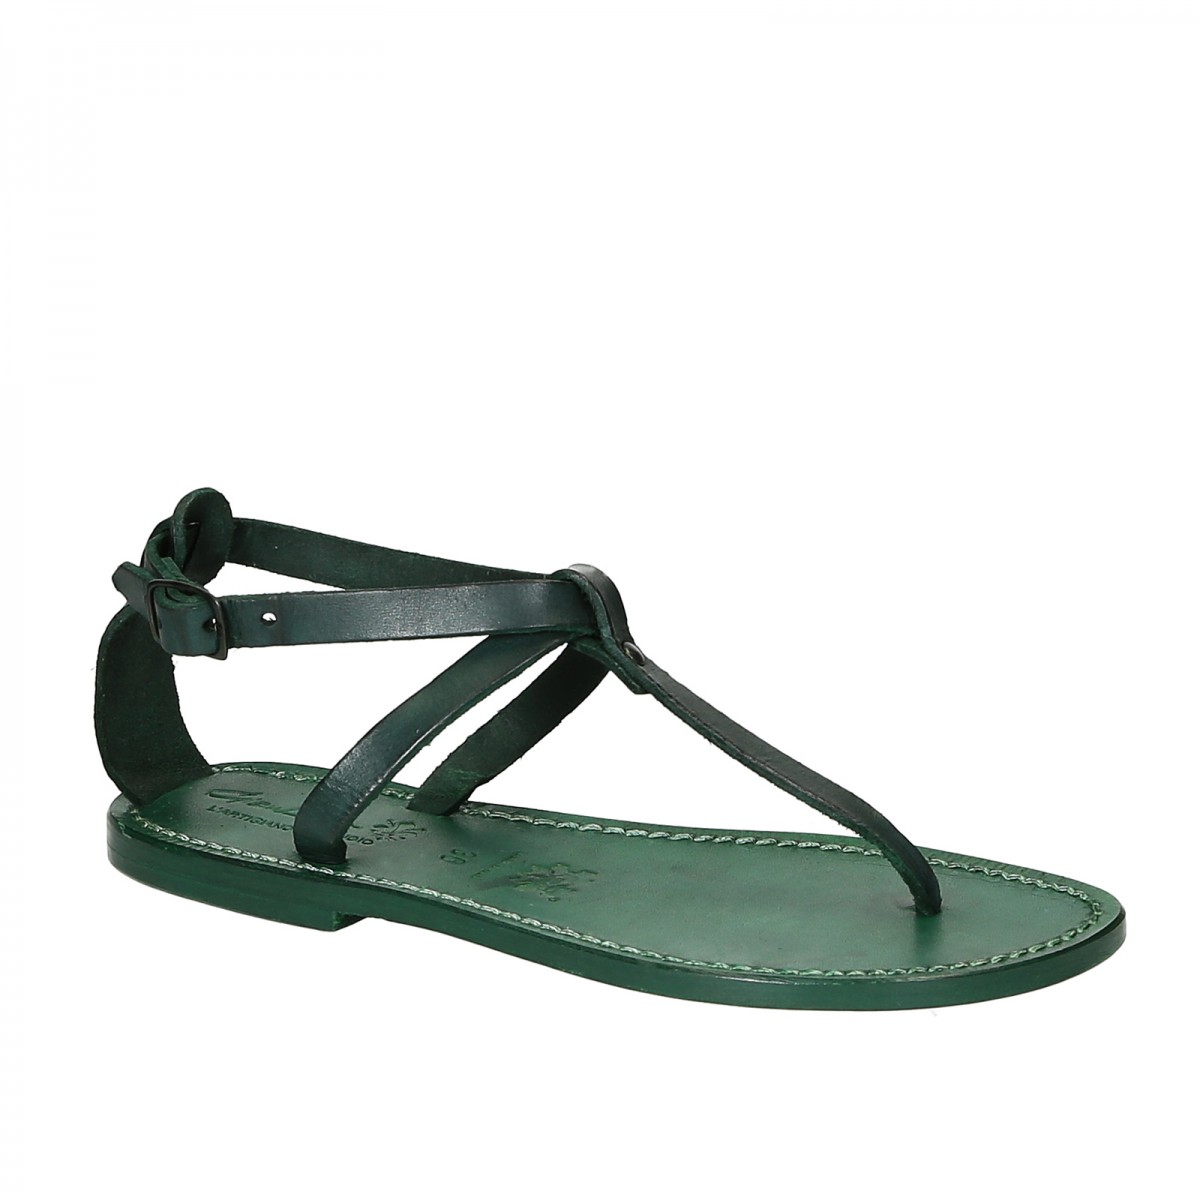 5d8070e6b69 Women s t-strap sandals in green Leather handmade in Italy. Loading zoom